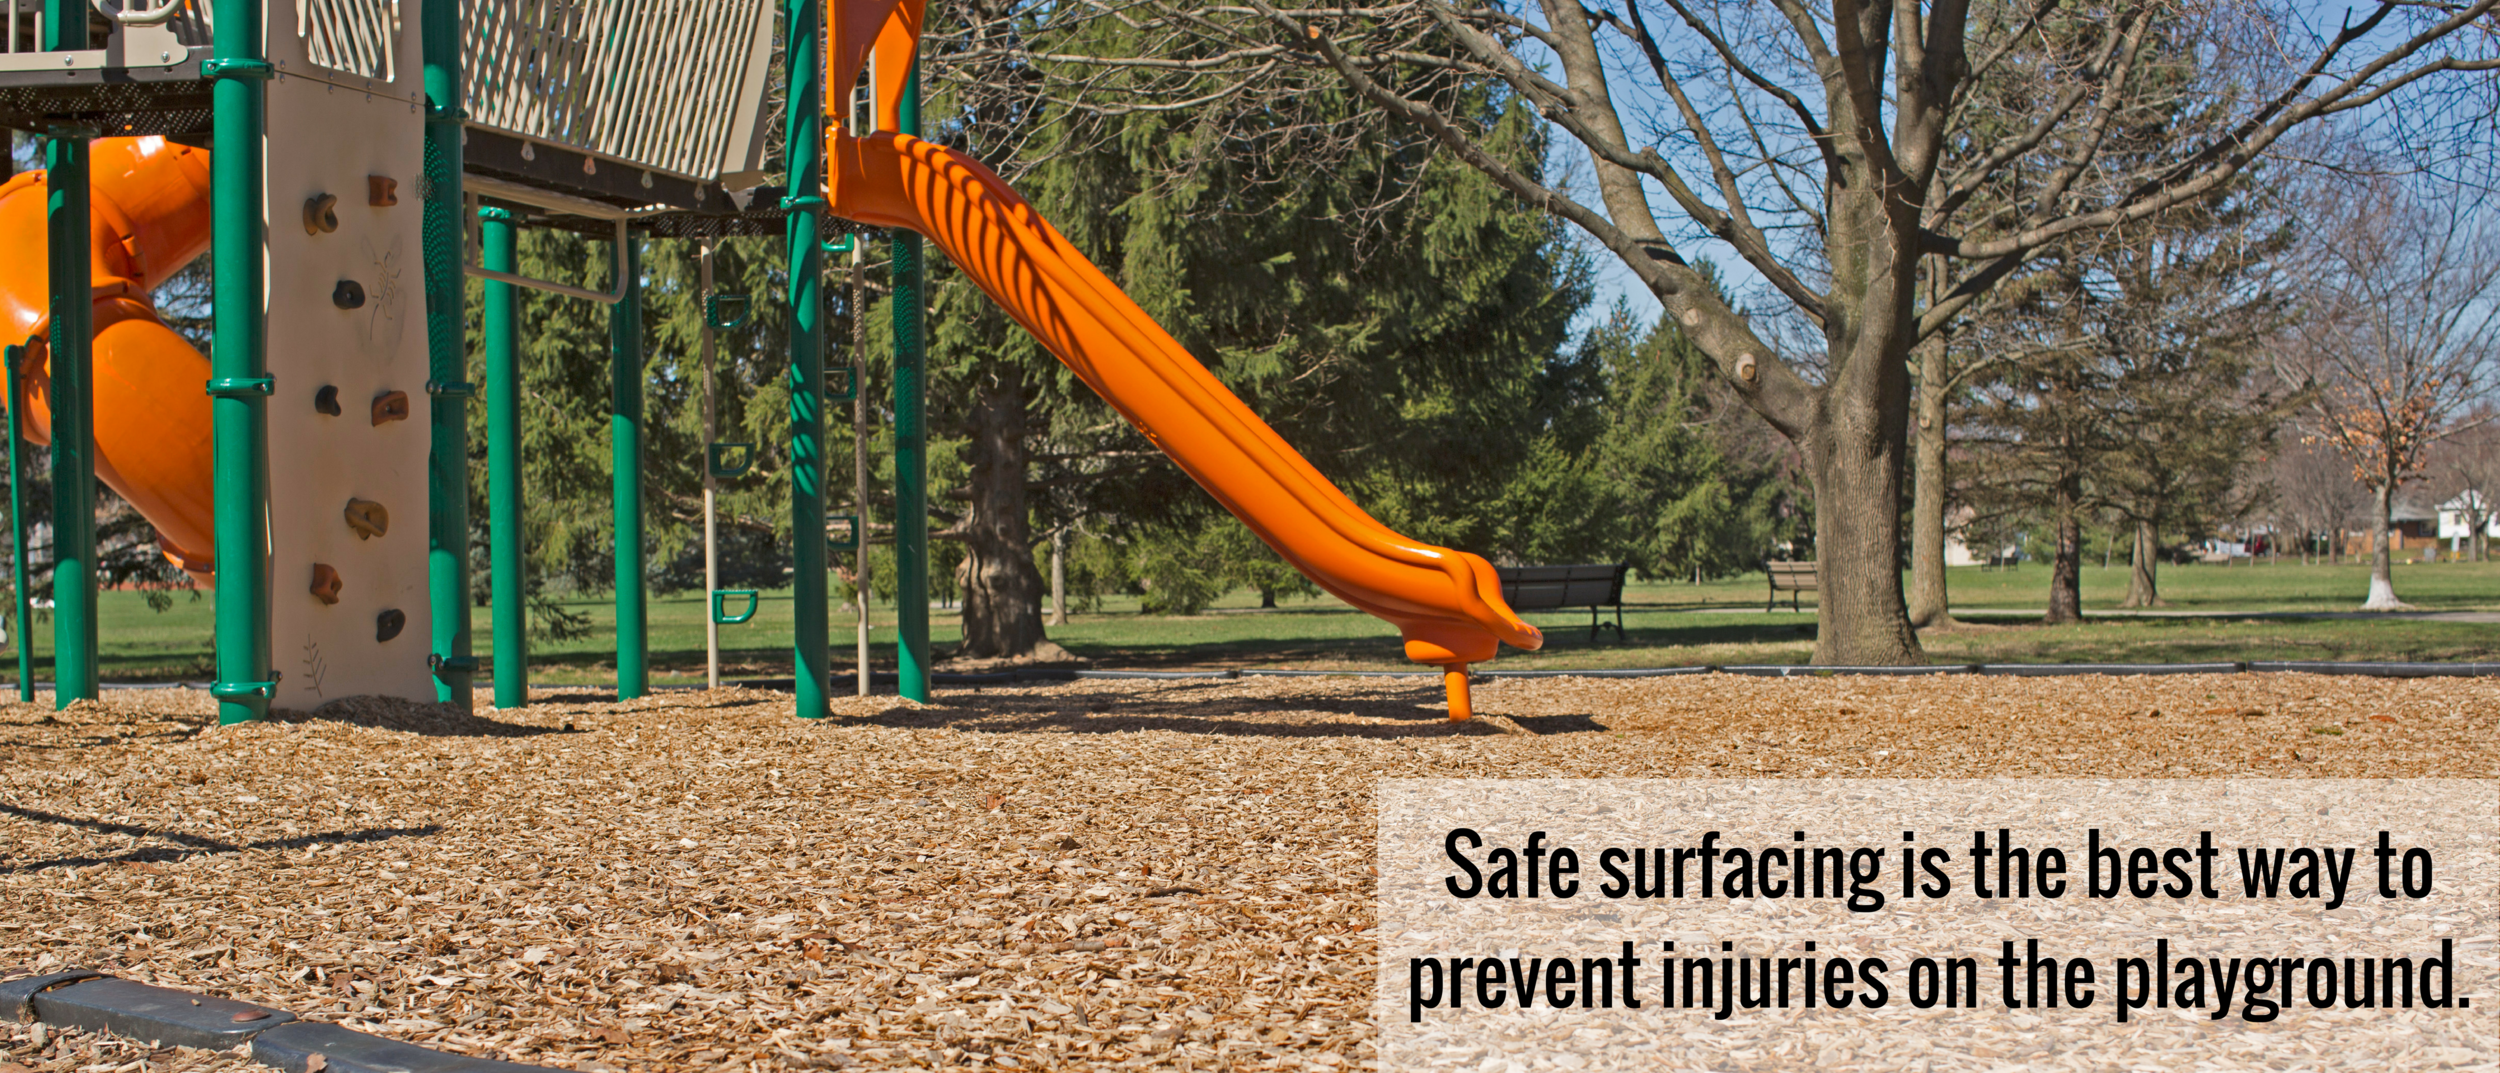 playgrounds-safe-surfaces-fact-graphic-photo.jpg